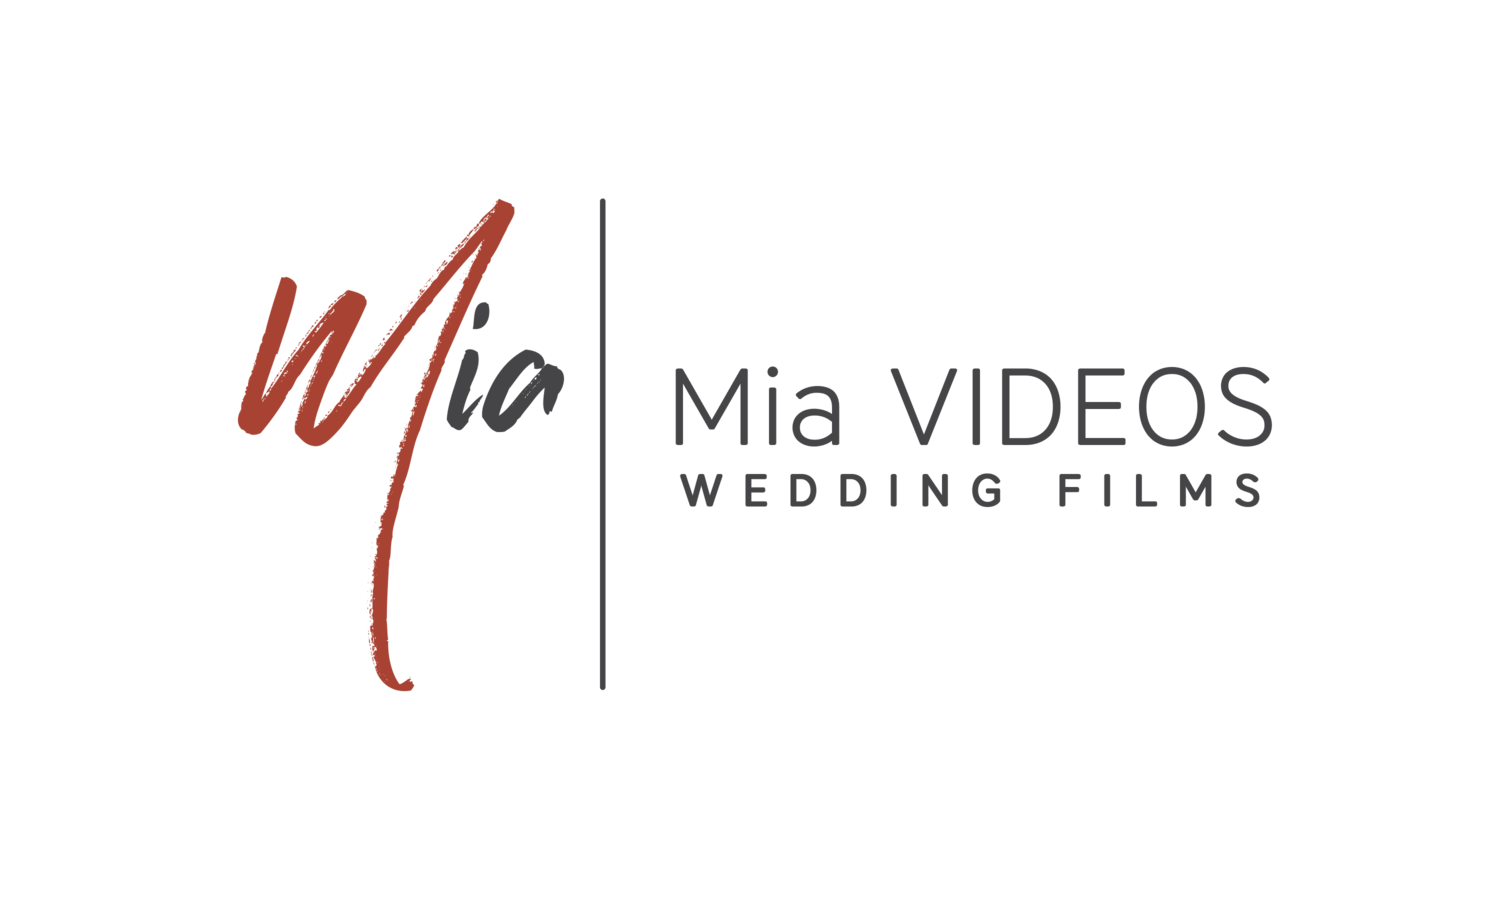 Wedding Films by Mia Videos